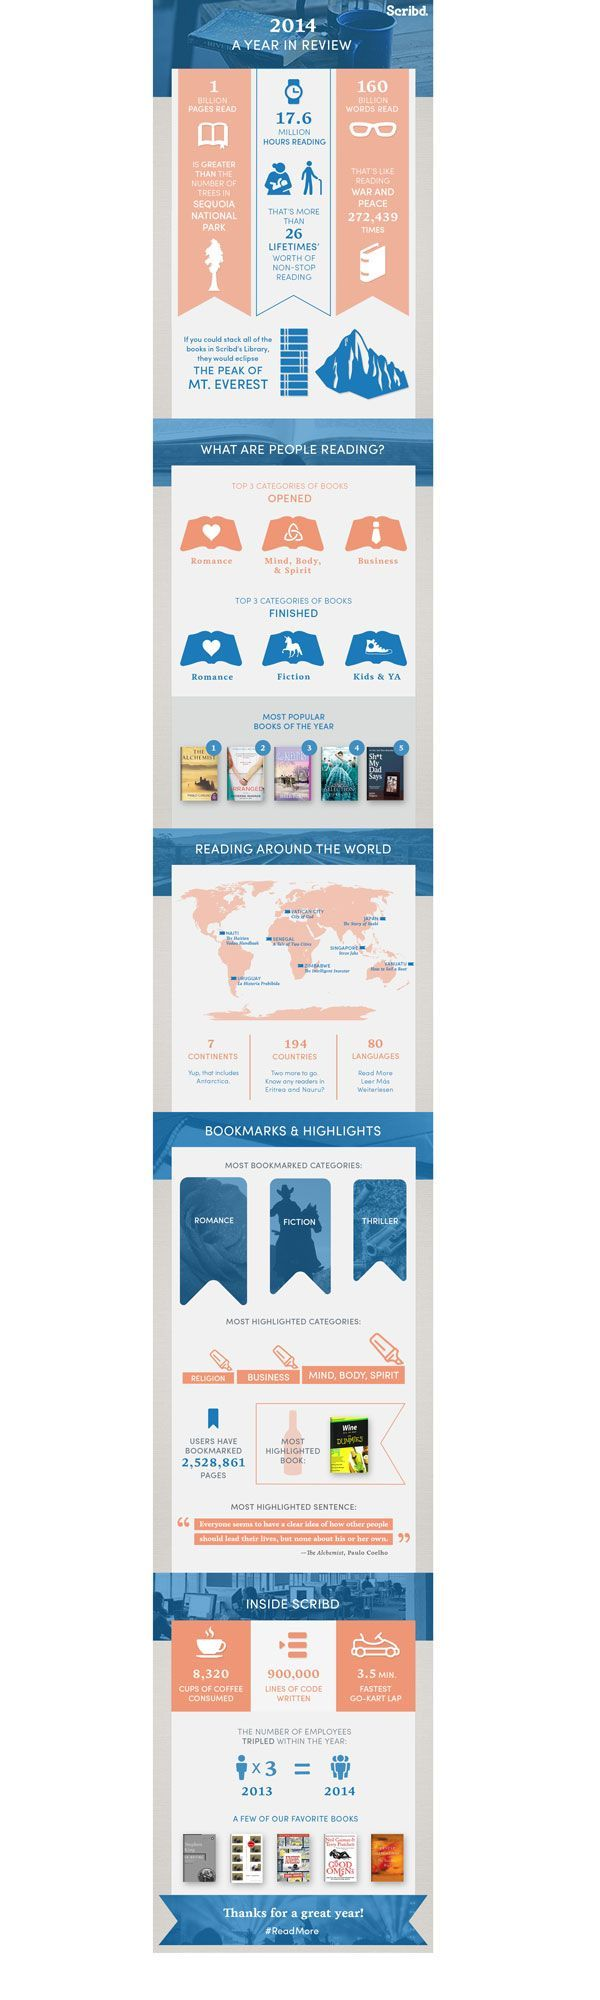 Most popular genre of digital books in 2014 was #romance. #books #book #survey #reading